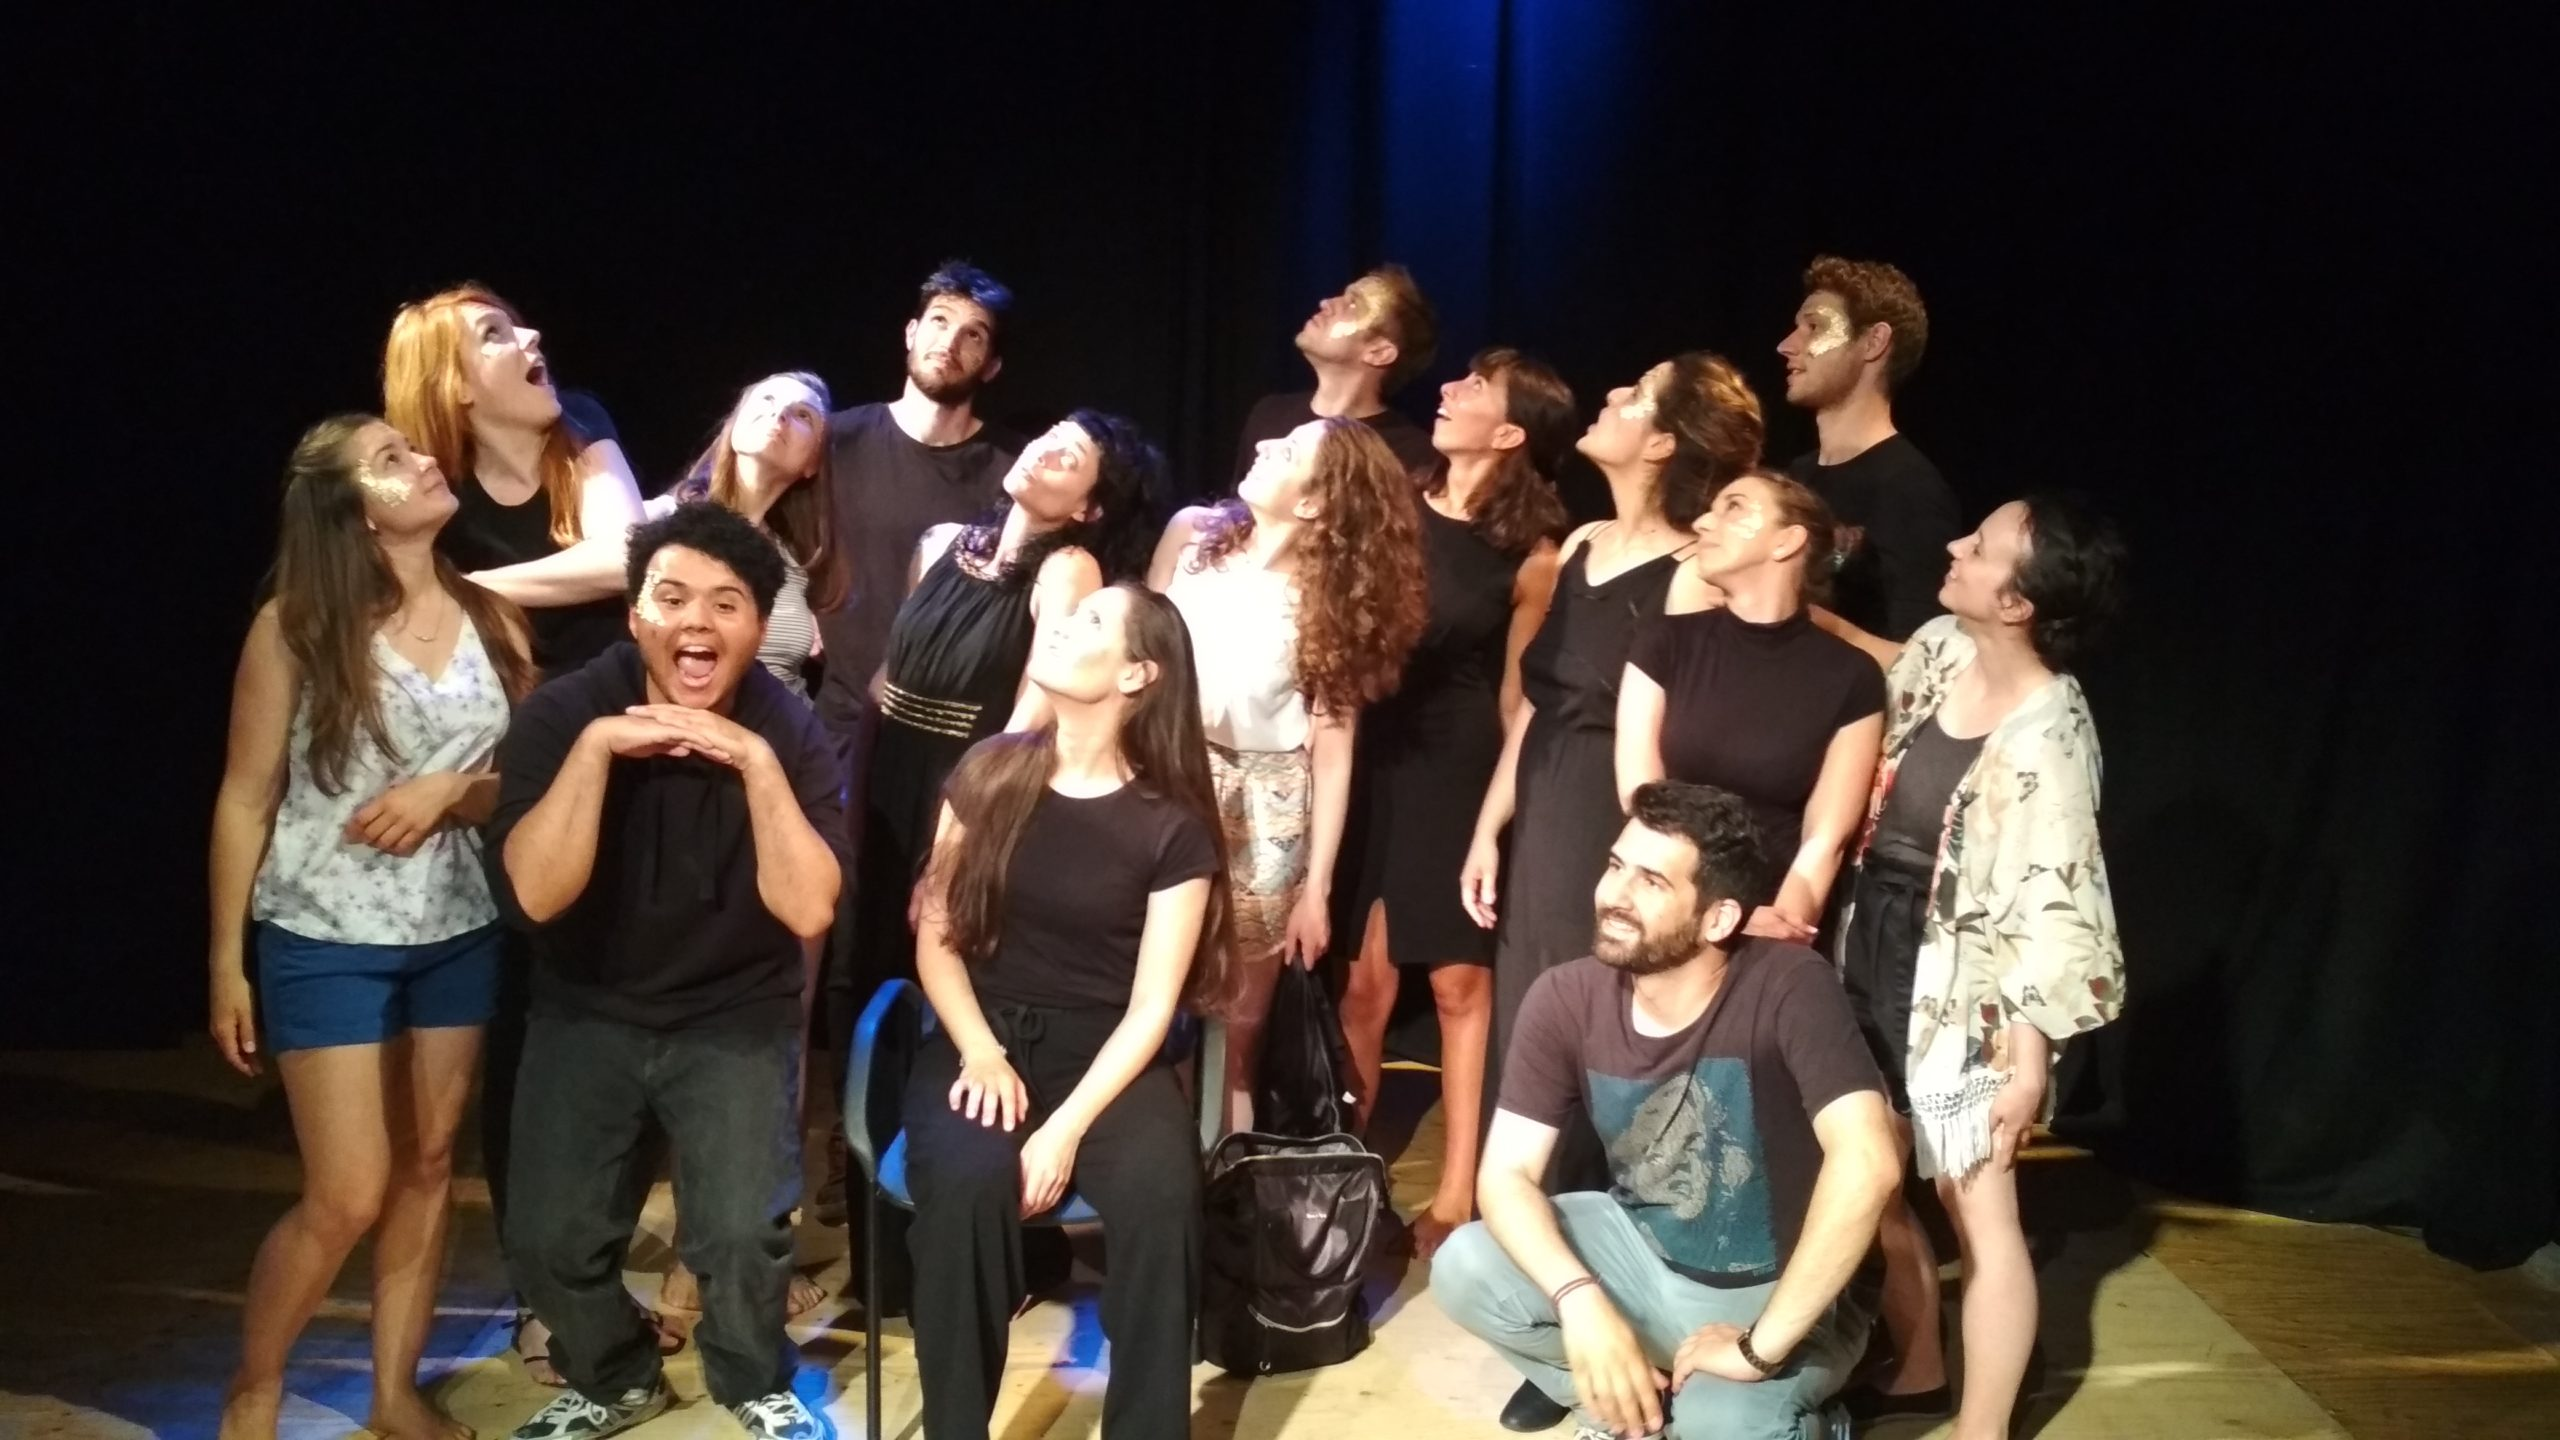 """""""Keeping up with the Greeks"""" show. Group photo of the cast and team, fifteen people. People are posing and looking up"""